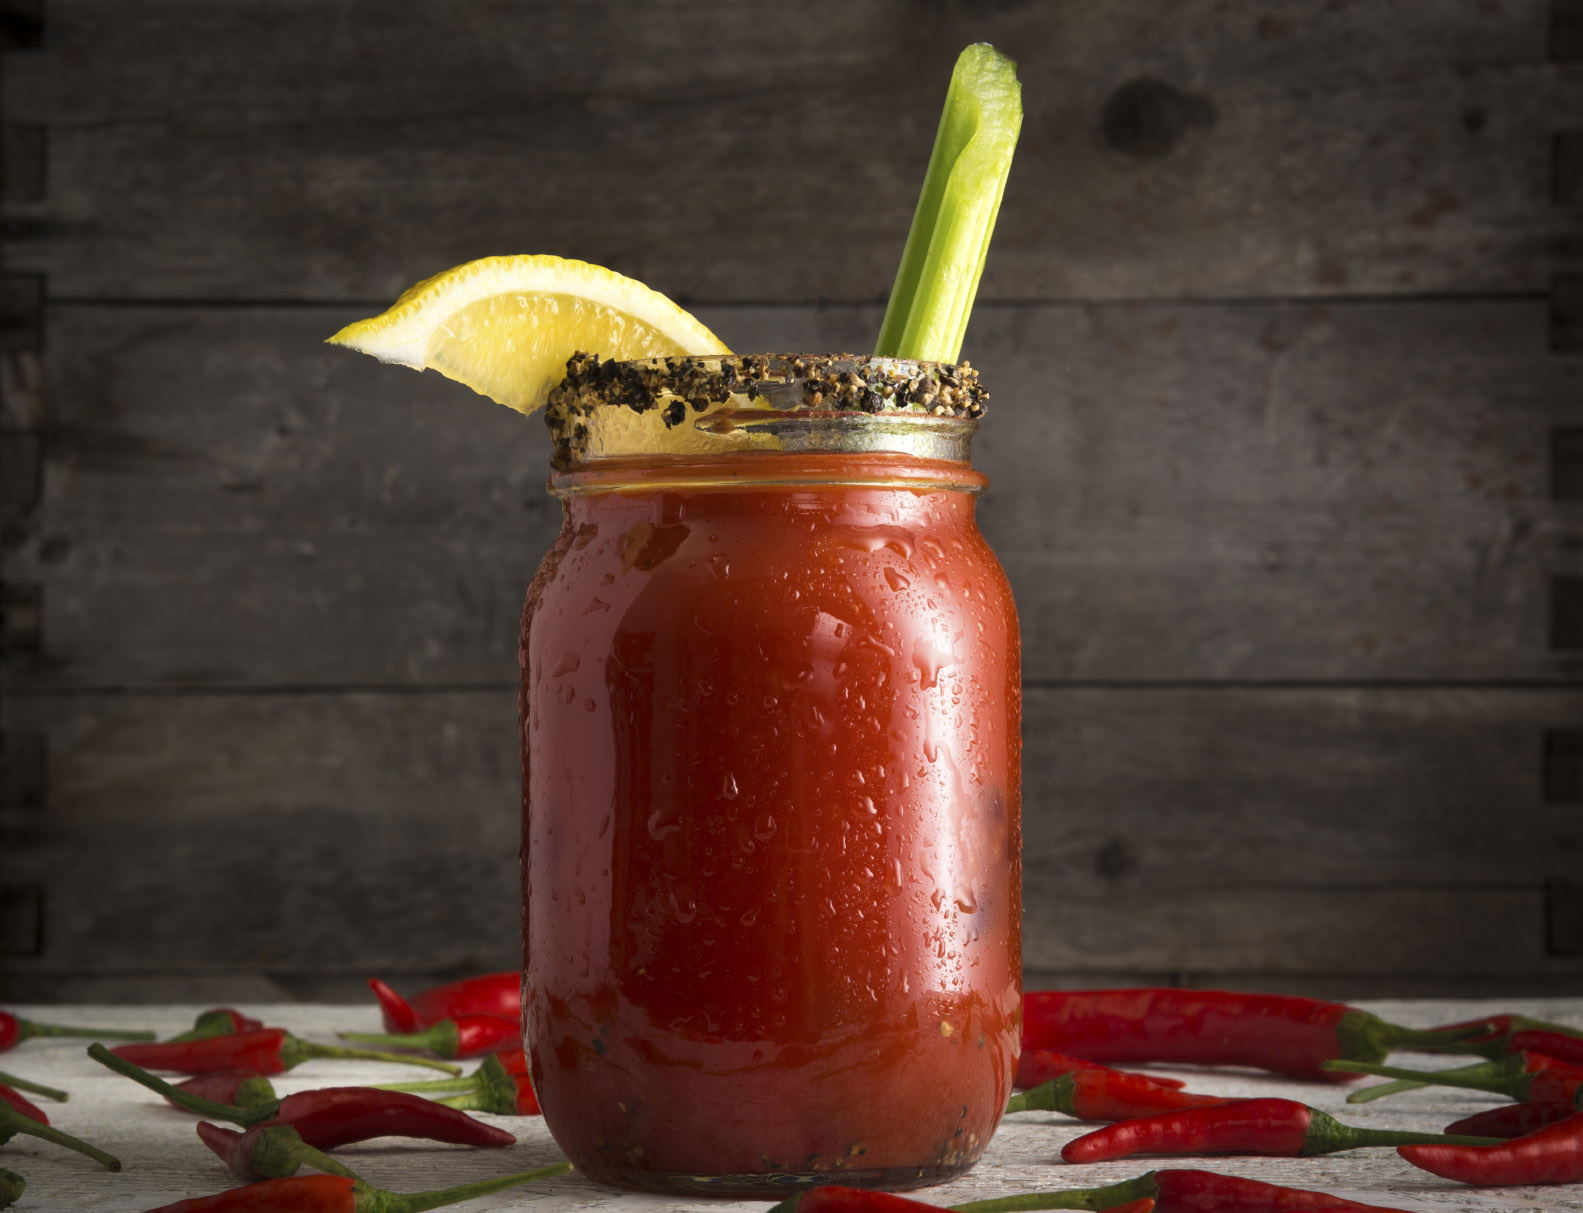 Bloody Mary or Bloody Ceasar with celery in mason jar rimmed with black pepper